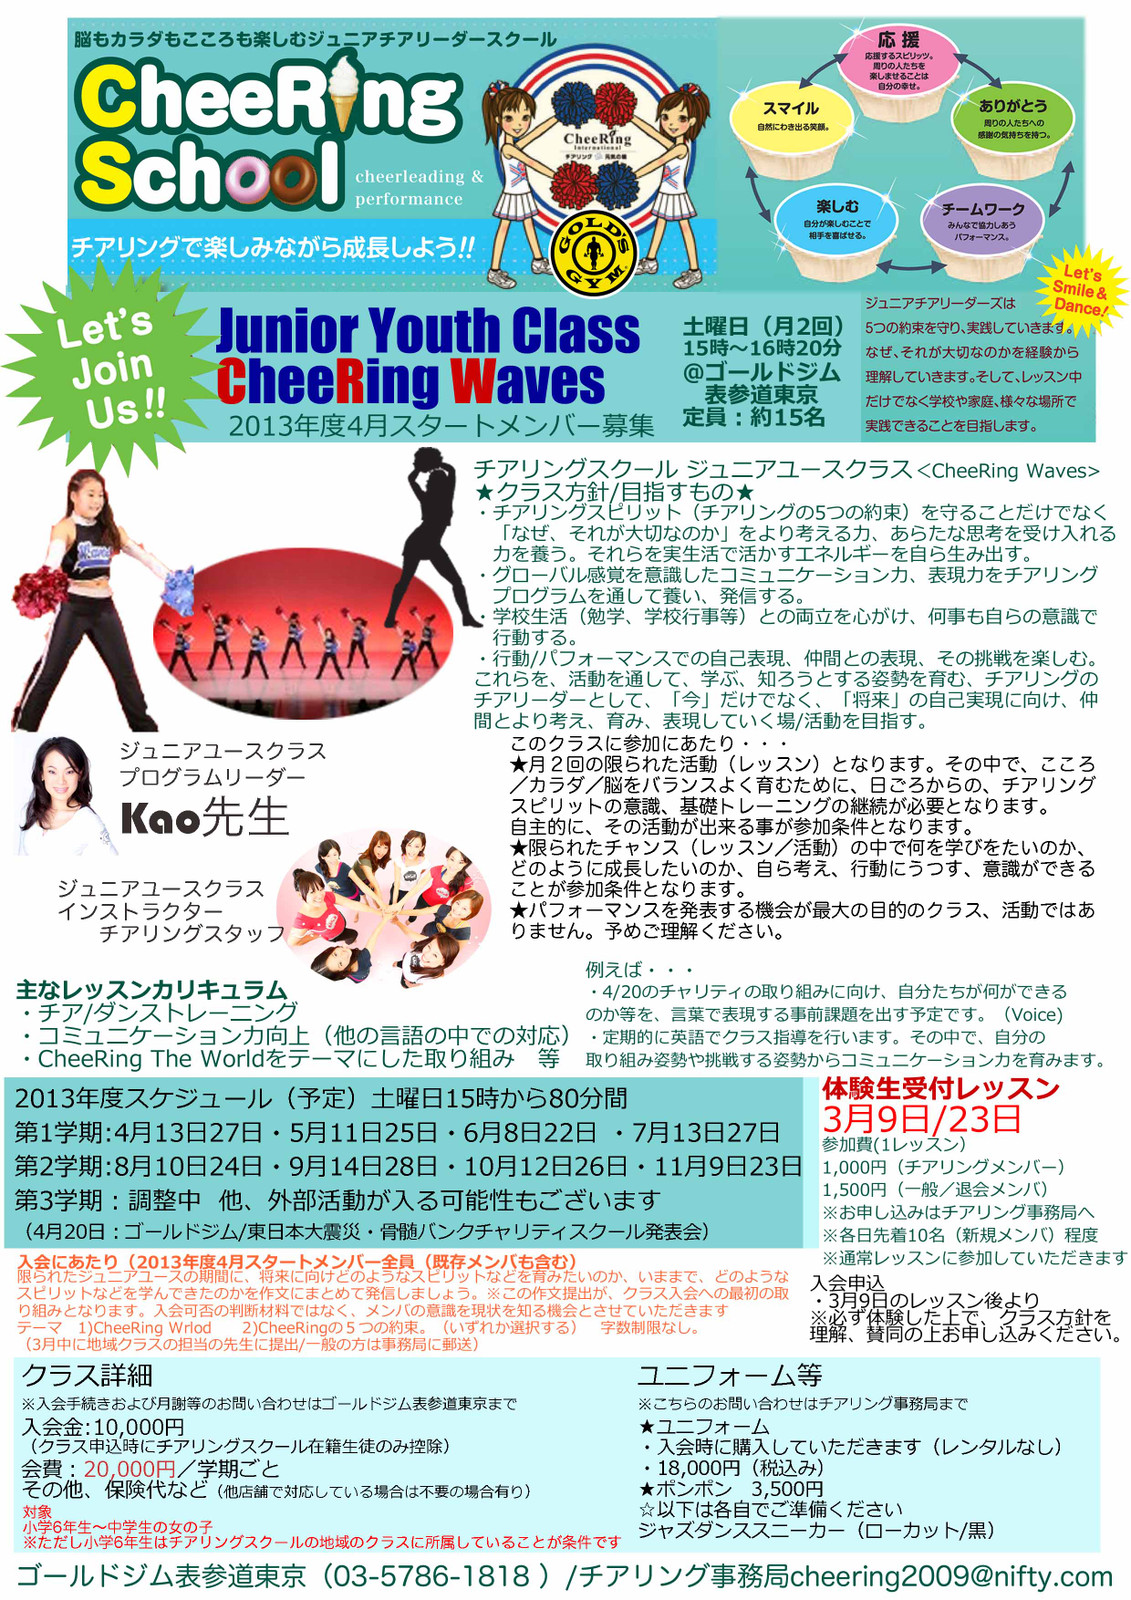 Cheeringjunioryouth2013web2_2